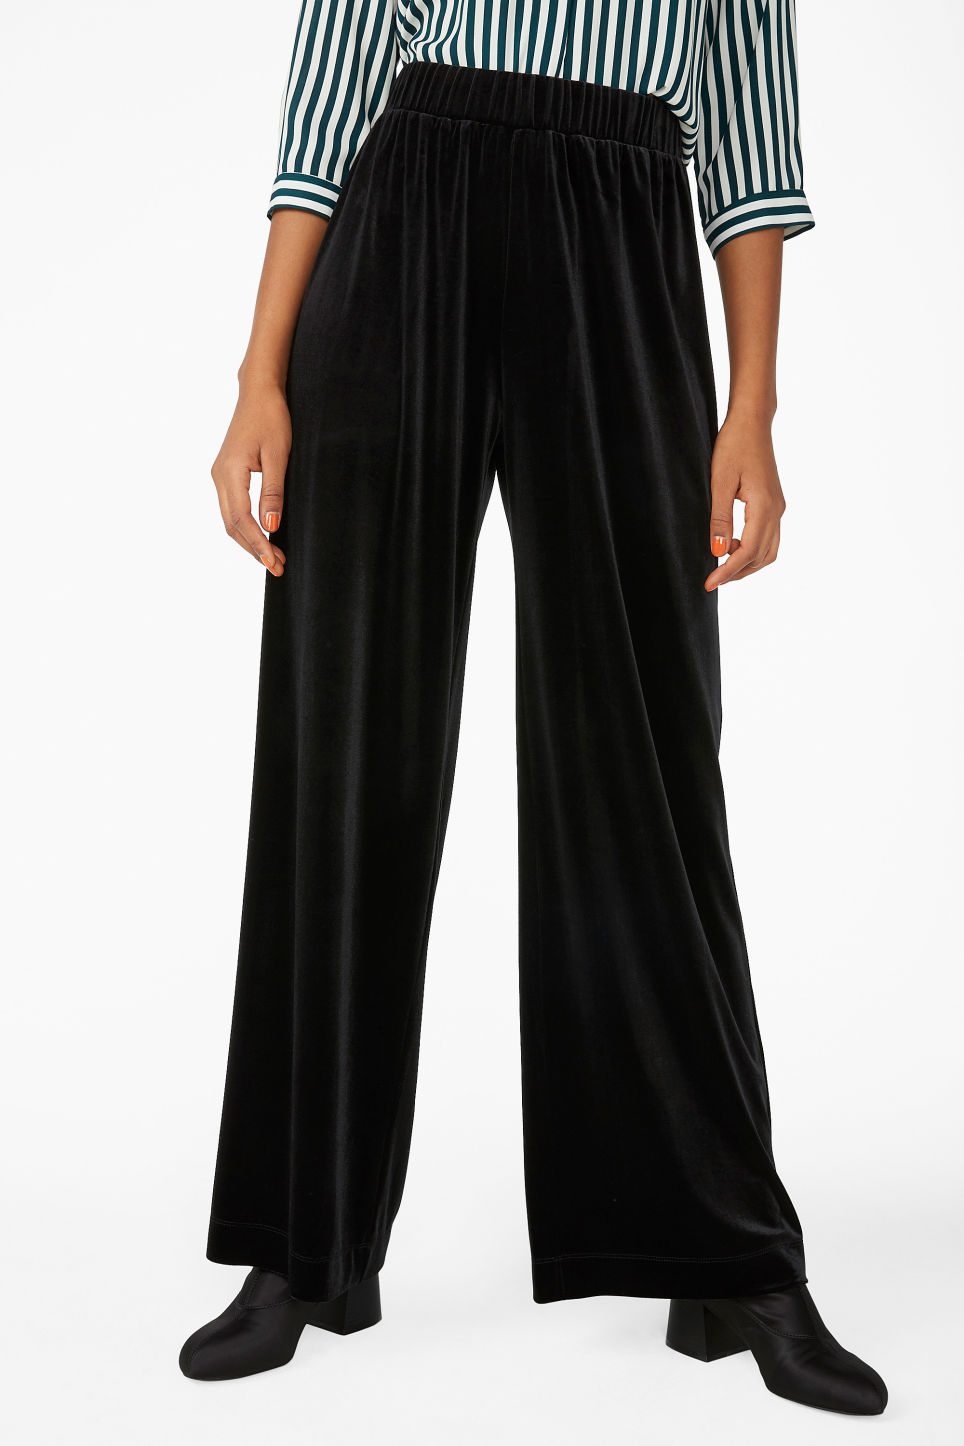 Model side image of Monki flowy velvet trousers in black